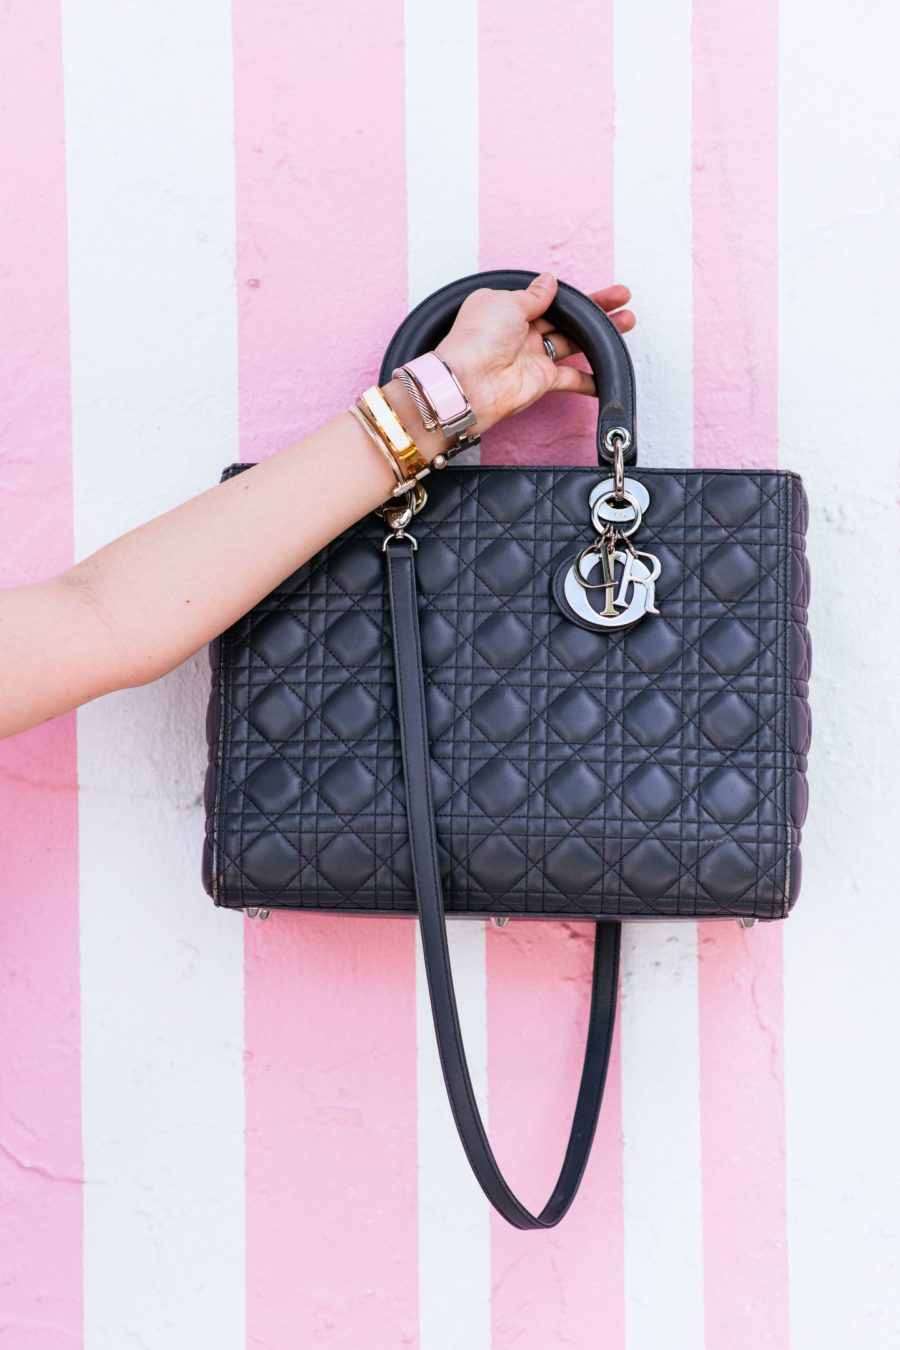 3b9dbba7e03d How to purchase designer handbags on a budget - Curated by Kirsten